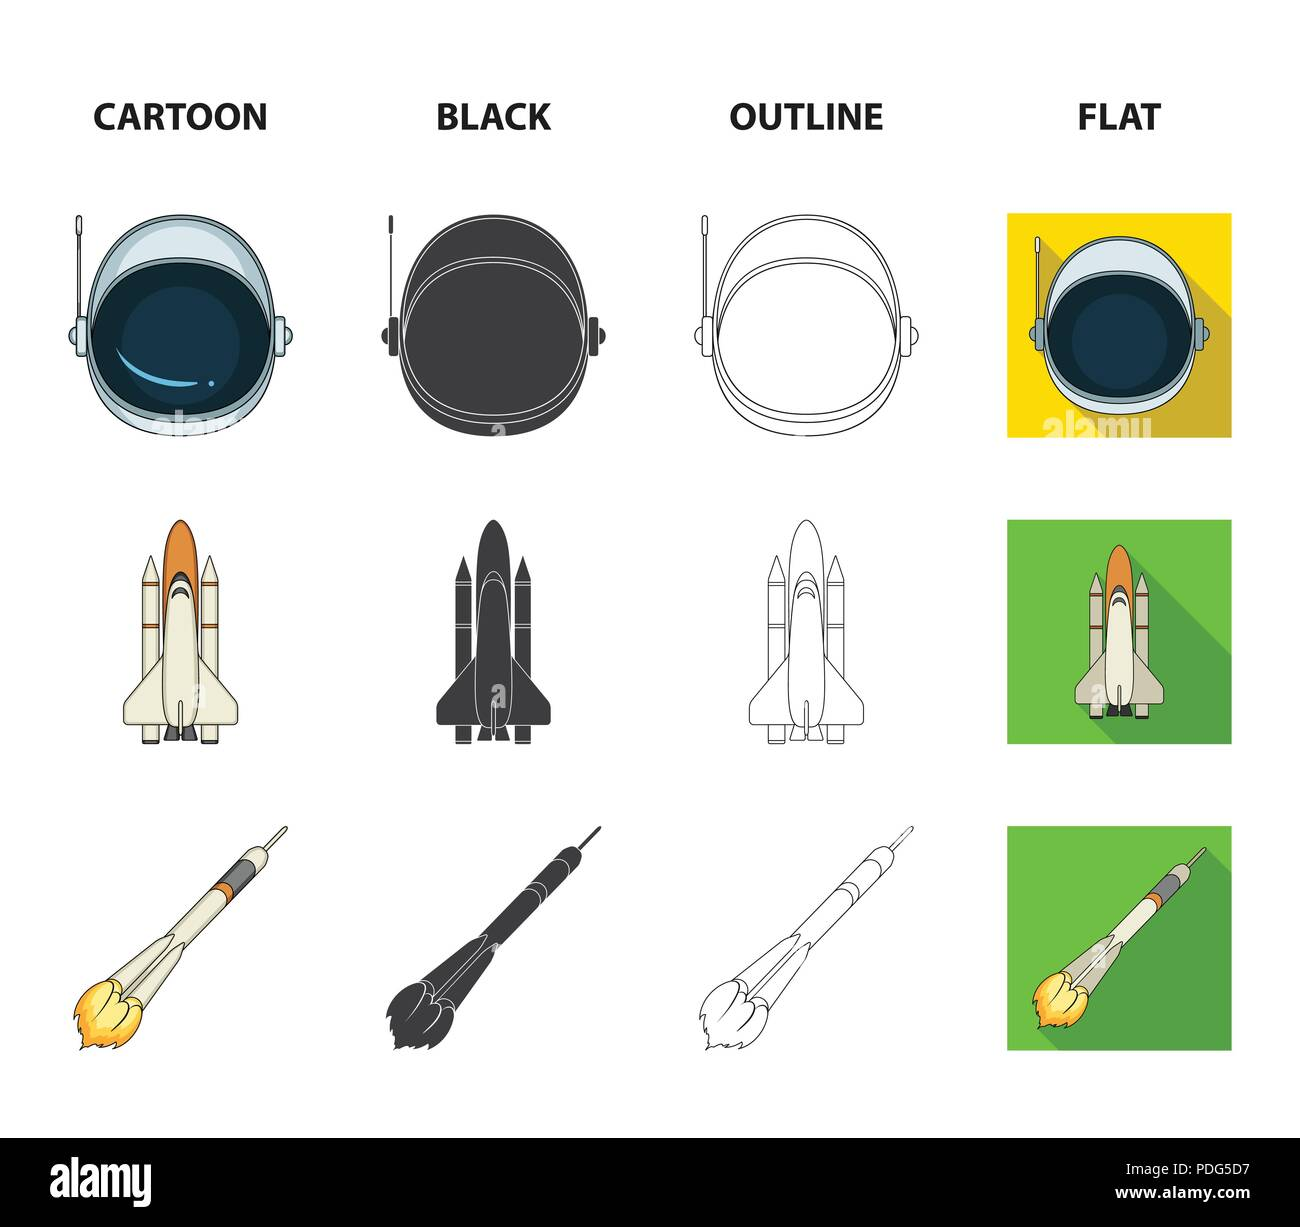 a spaceship in space a cargo shuttle a launch pad an astronaut helmet space technology set collection icons in cartoonblackoutlineflat style ve PDG5D7 a spaceship in space, a cargo shuttle, a launch pad, an astronaut